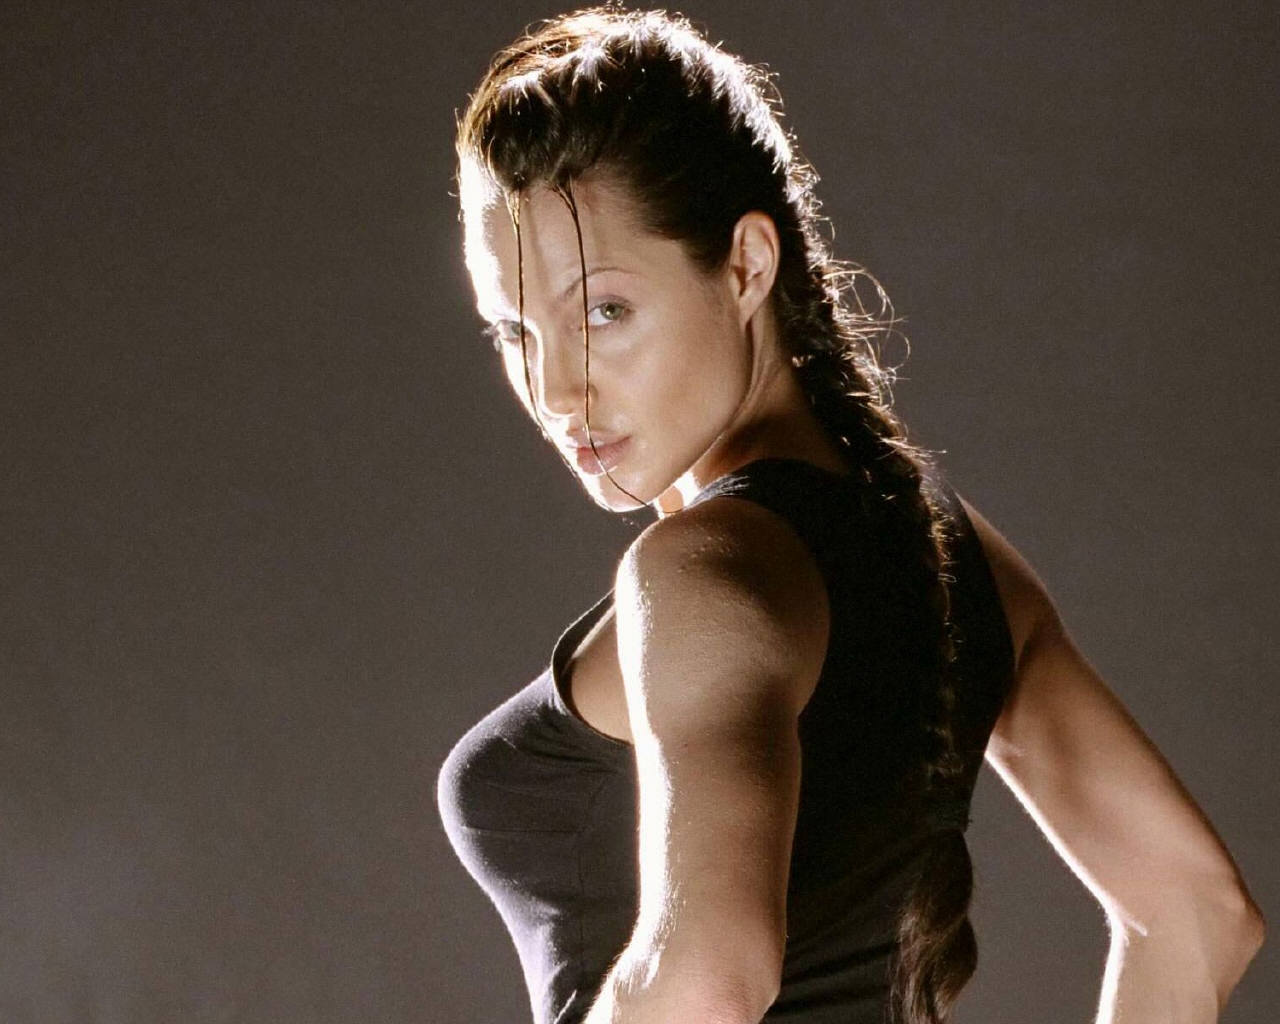 angelina jolie new hot - photo #18